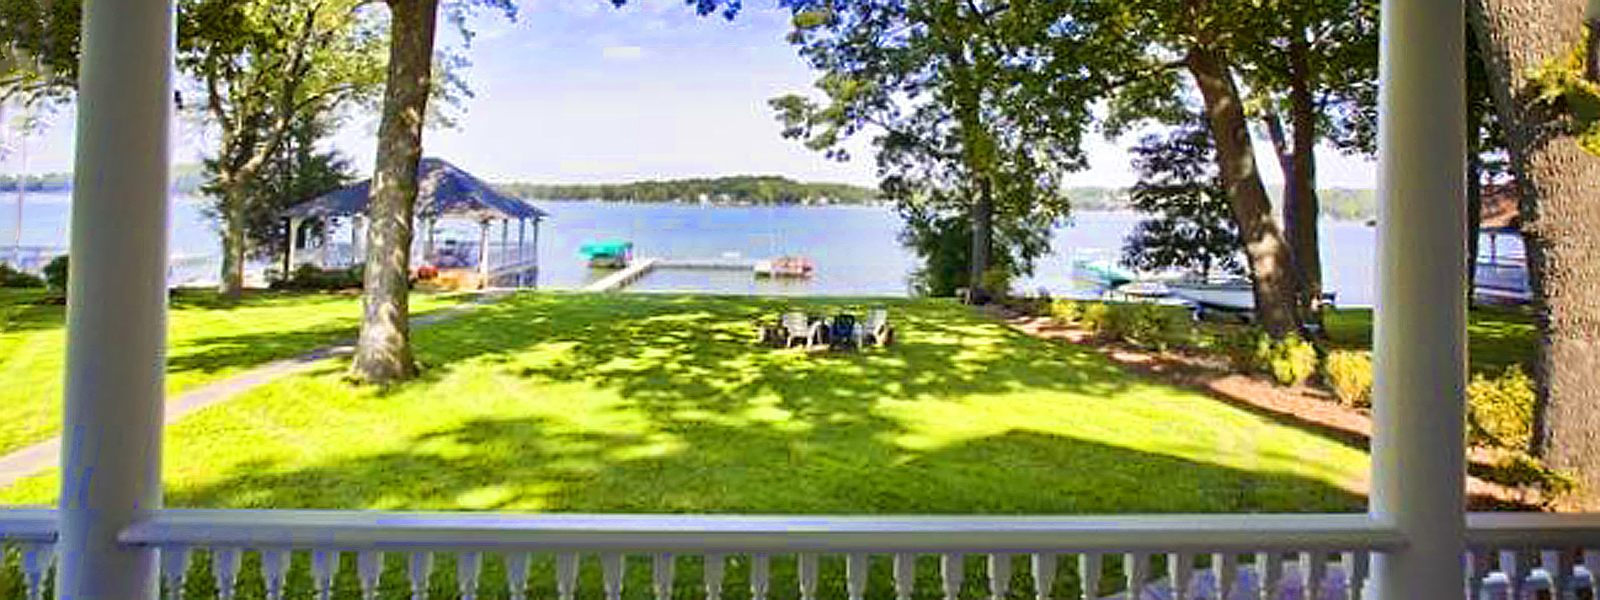 Wondrous Twin Lakes Wi Lakefront Homes For Sale Home Remodeling Inspirations Gresiscottssportslandcom